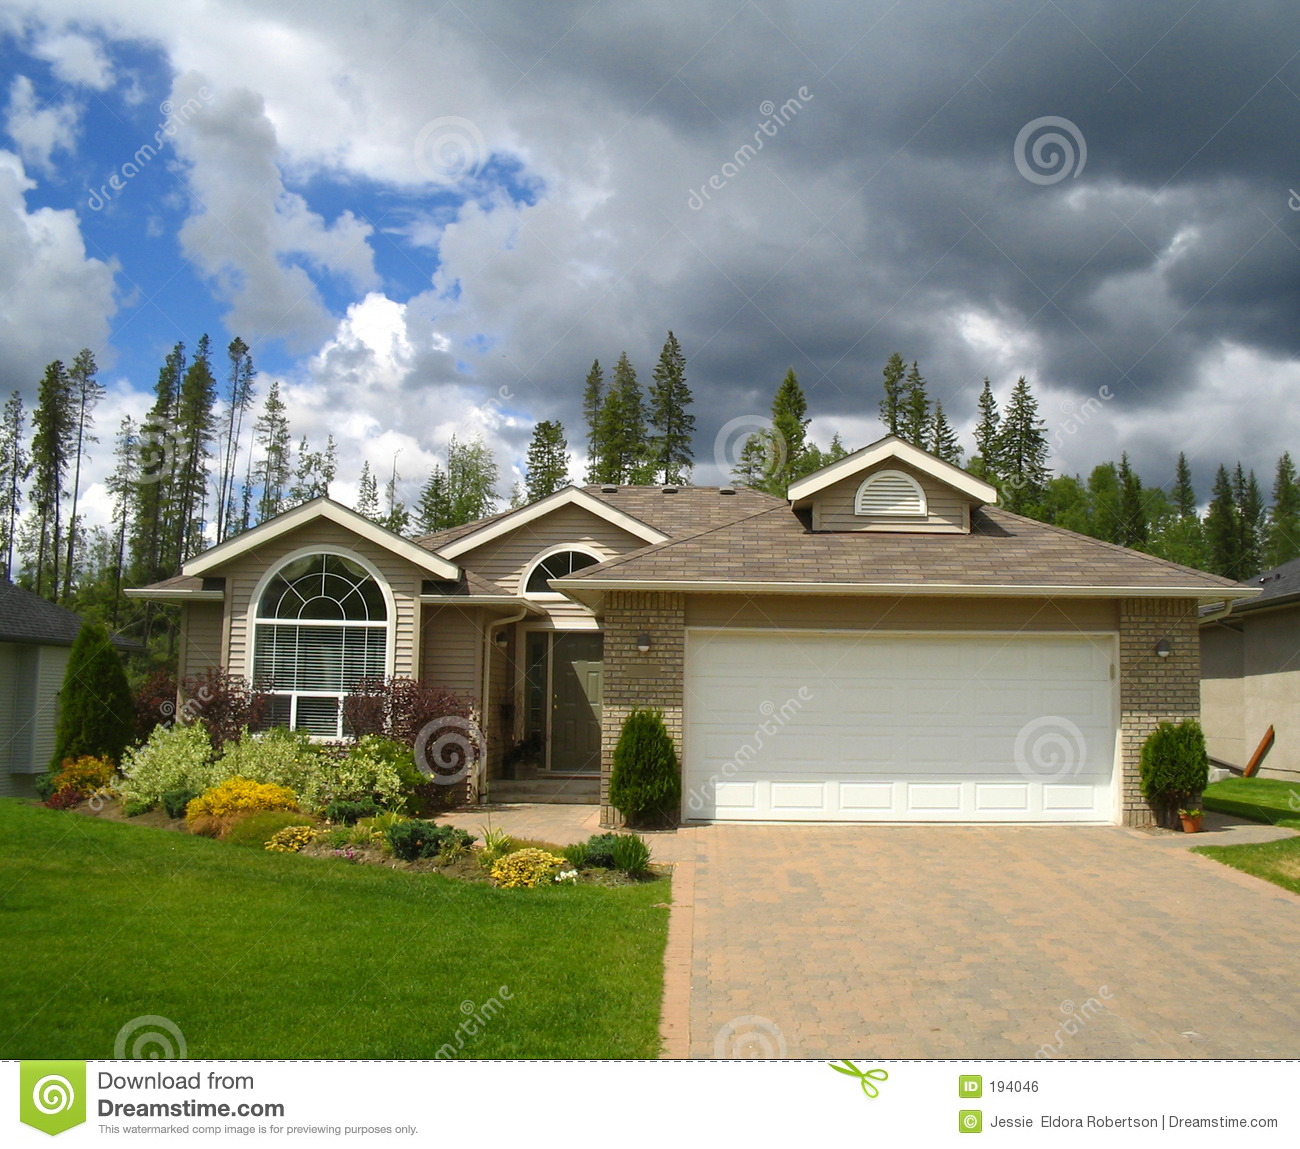 Storm clouds over nice house in the suburbs royalty free for Nice home image